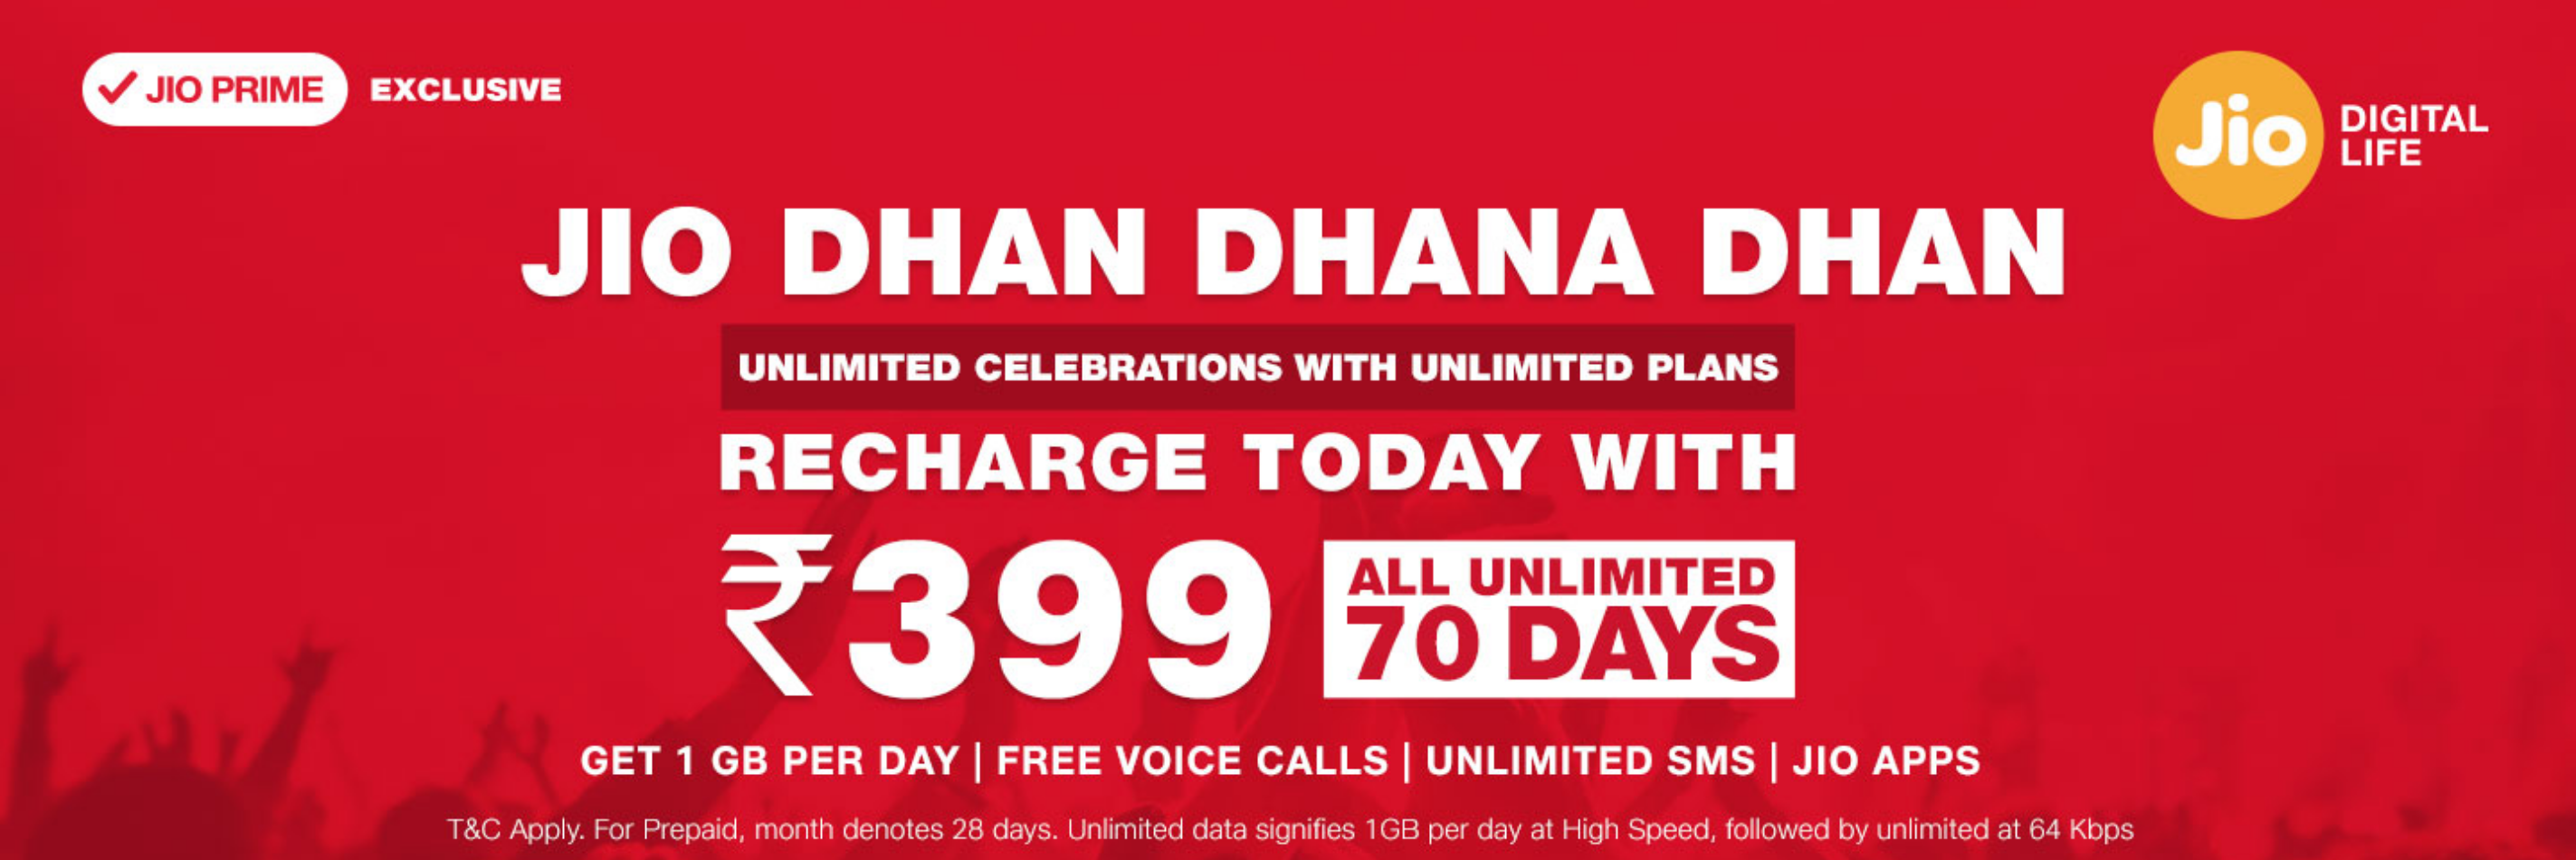 Unlimited 4G Data Plans by Reliance Jio | Techno FAQ